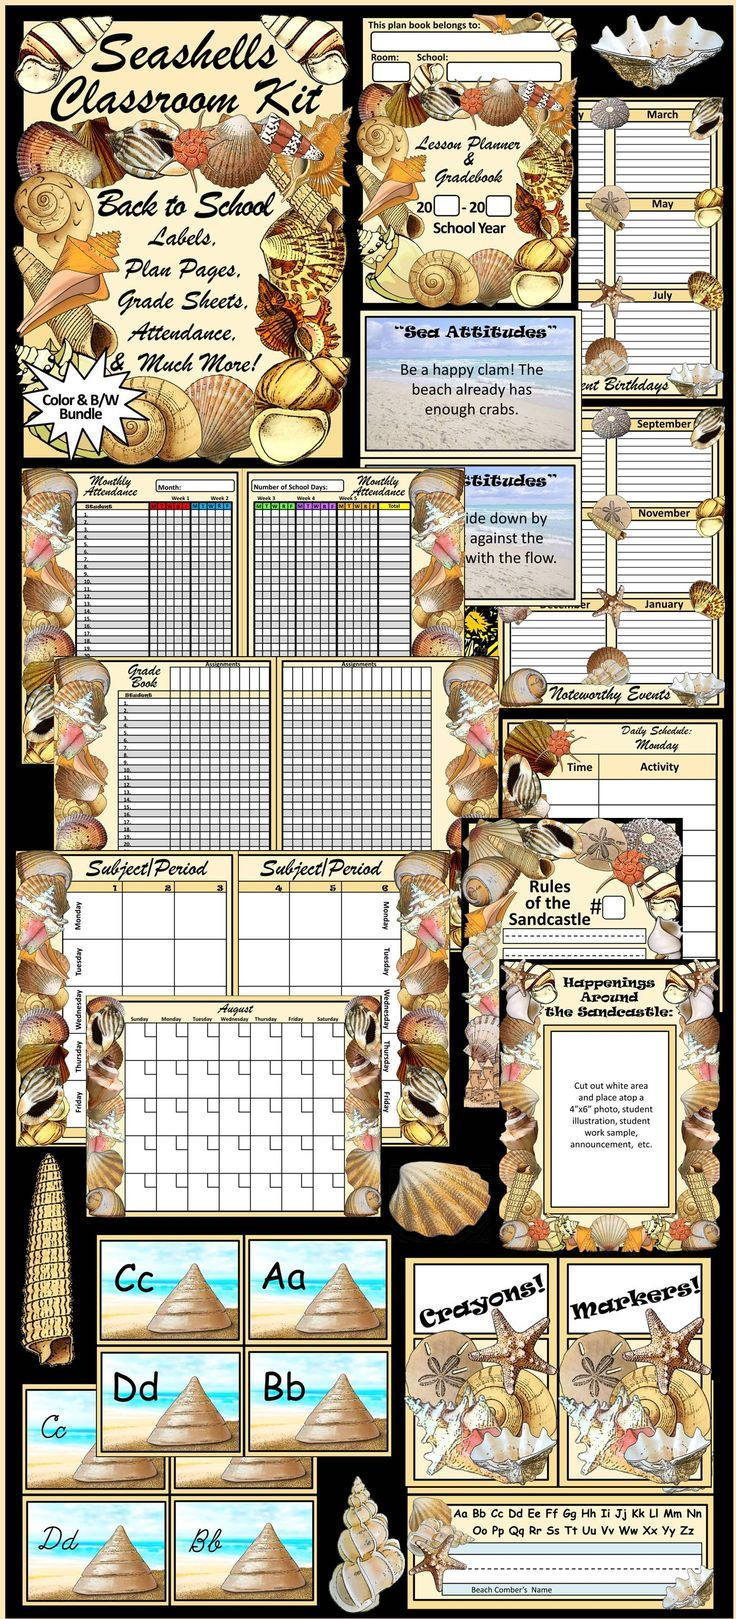 """Beach Theme Classroom Kit and Seashells Lesson Planner: Contains pages and pages of beautiful, classroom management items. Includes  nameplates,  rules templates, supply labels, super student template, birthday templates, lost tooth template, shipshape shipmate award cards, bulletin board decor set, """"sea-attitudes"""" inspirational cards, word wall heading cards, daily schedule, attendance, grade book, lesson planner, calendar, & student contact information sheets."""